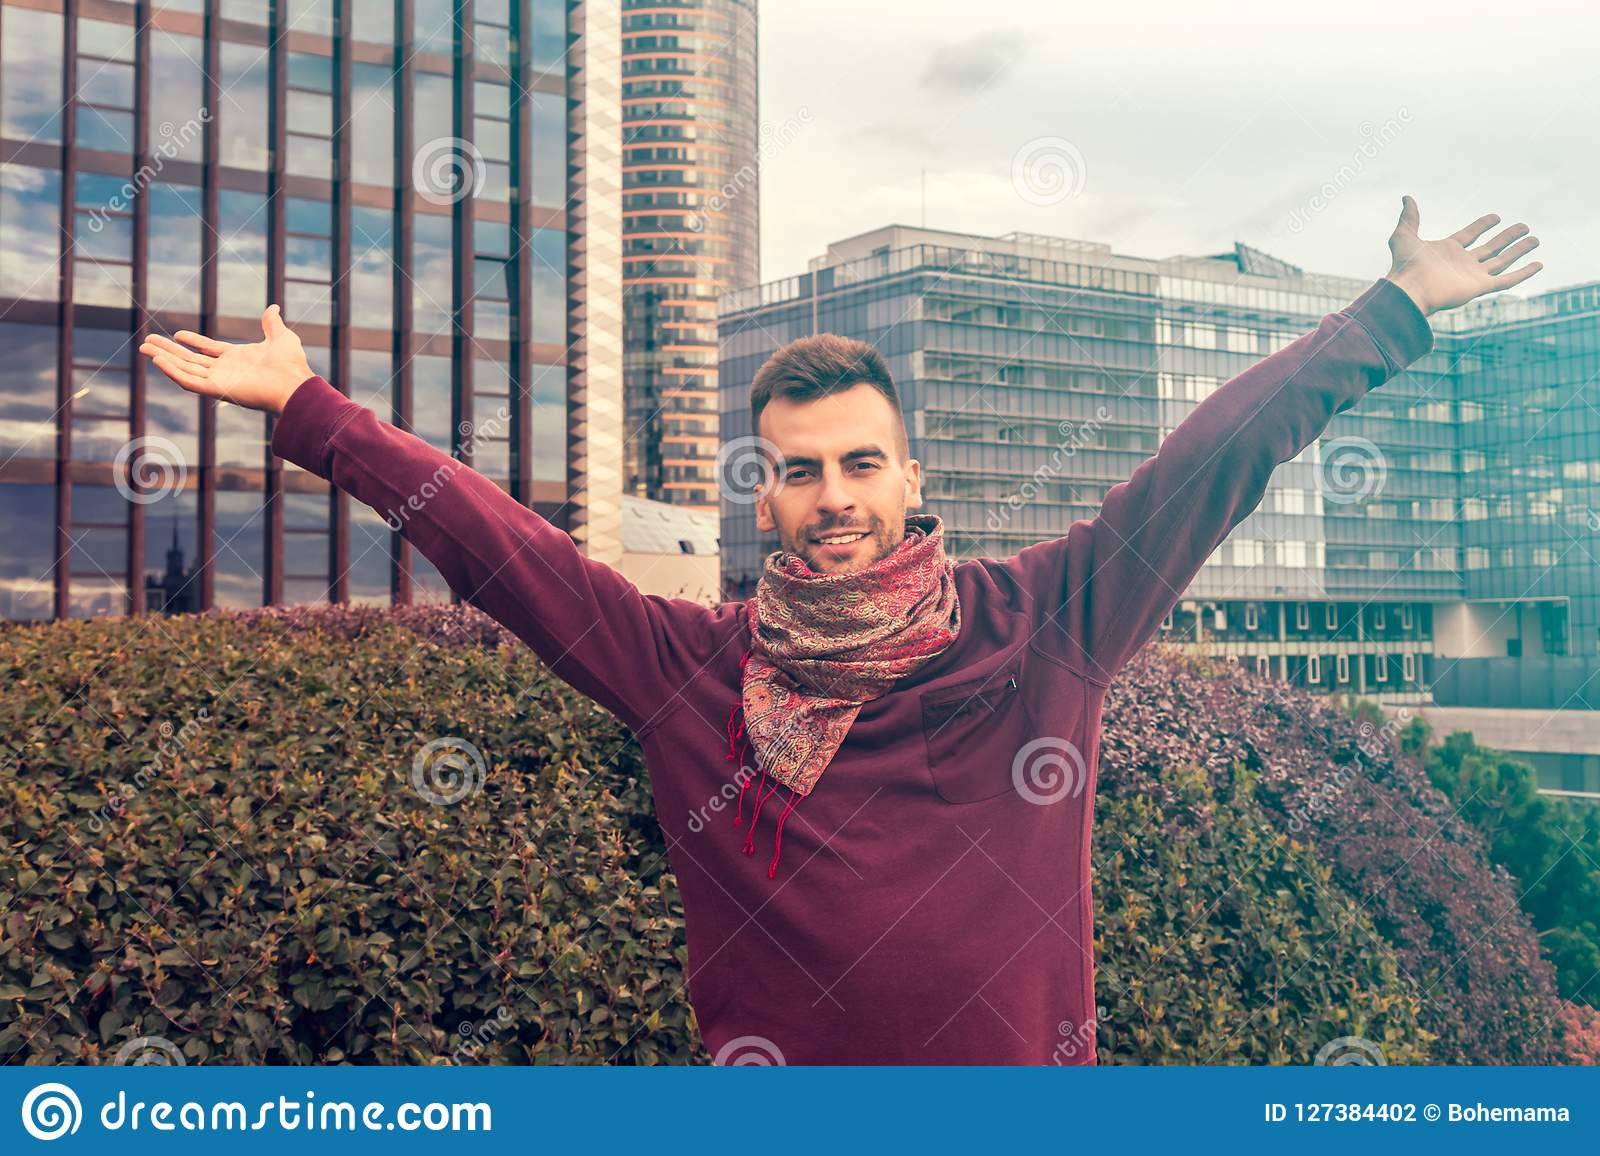 A young man raising his arms, open palms in the modern city center - happy, success and achievement concepts